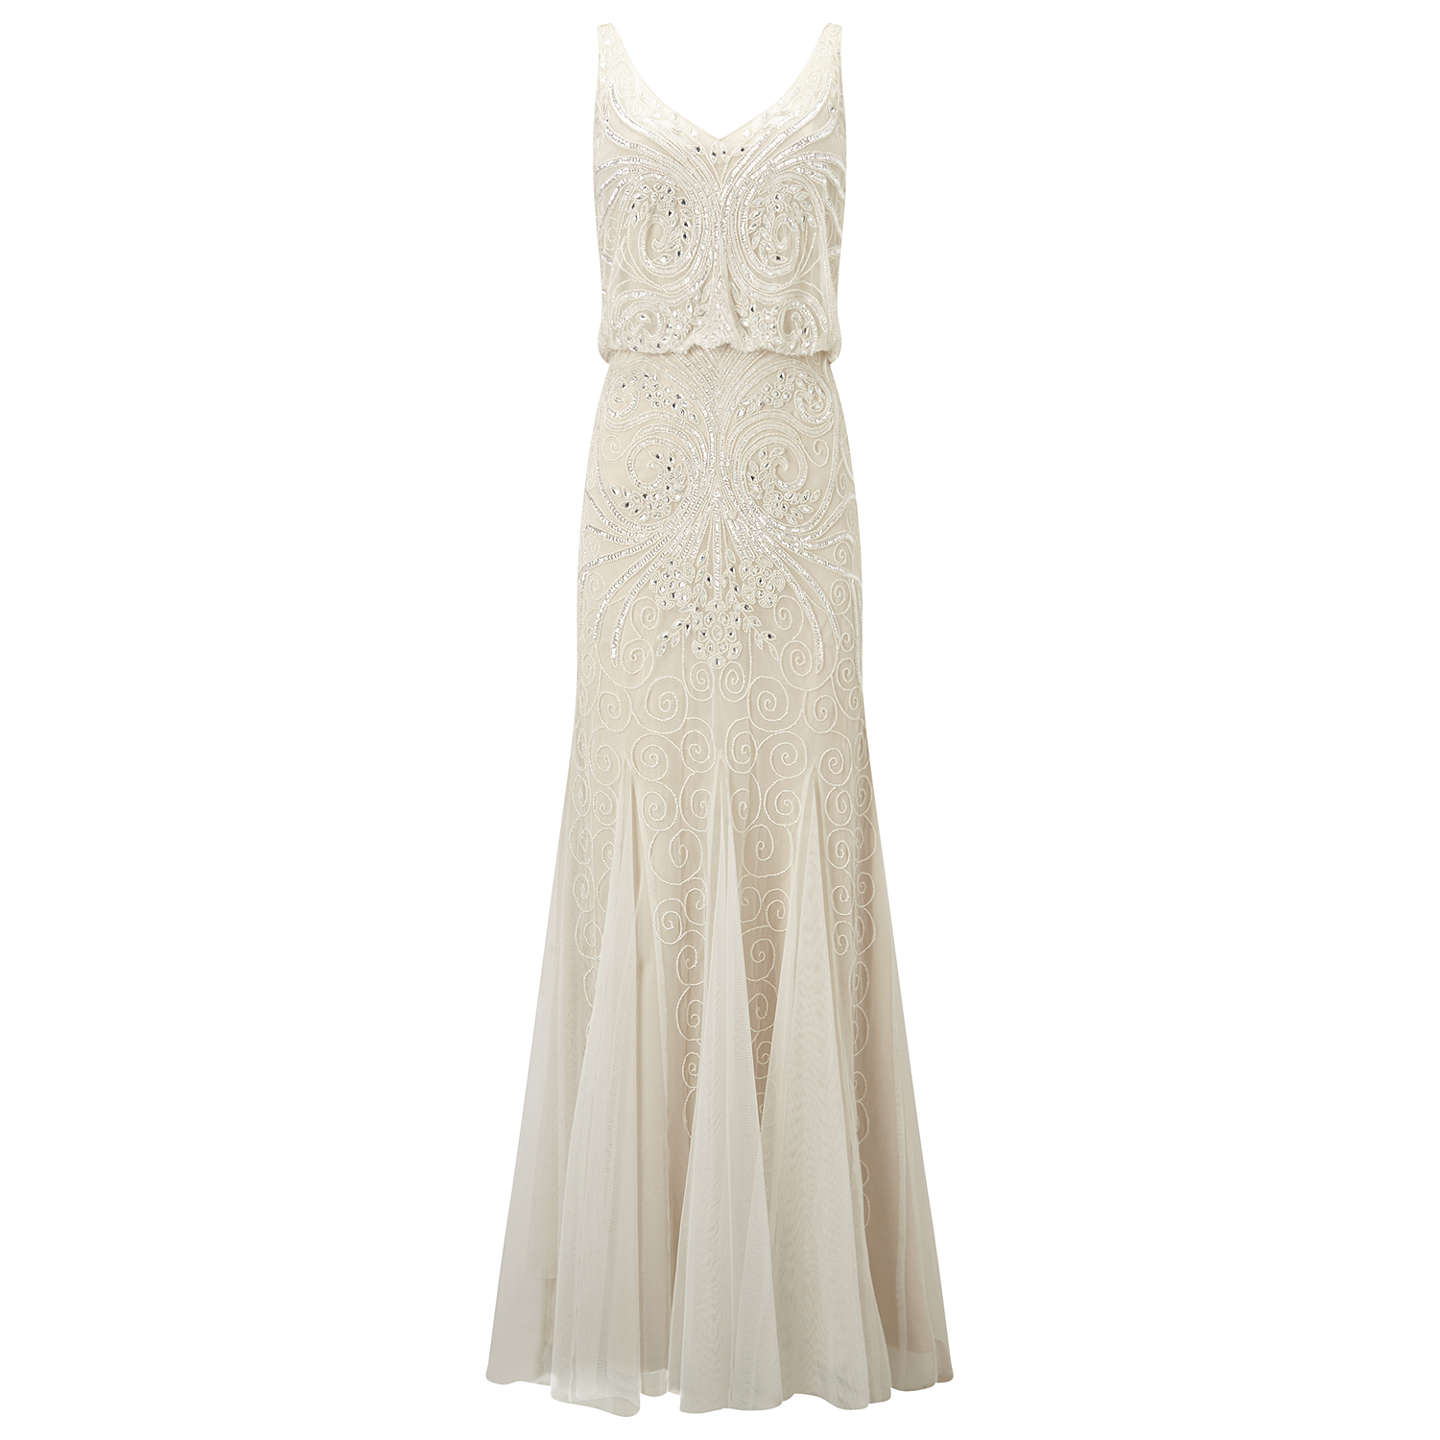 BuyPhase Eight Cathlyn Wedding Dress, Ivory, 6 Online at johnlewis.com ...